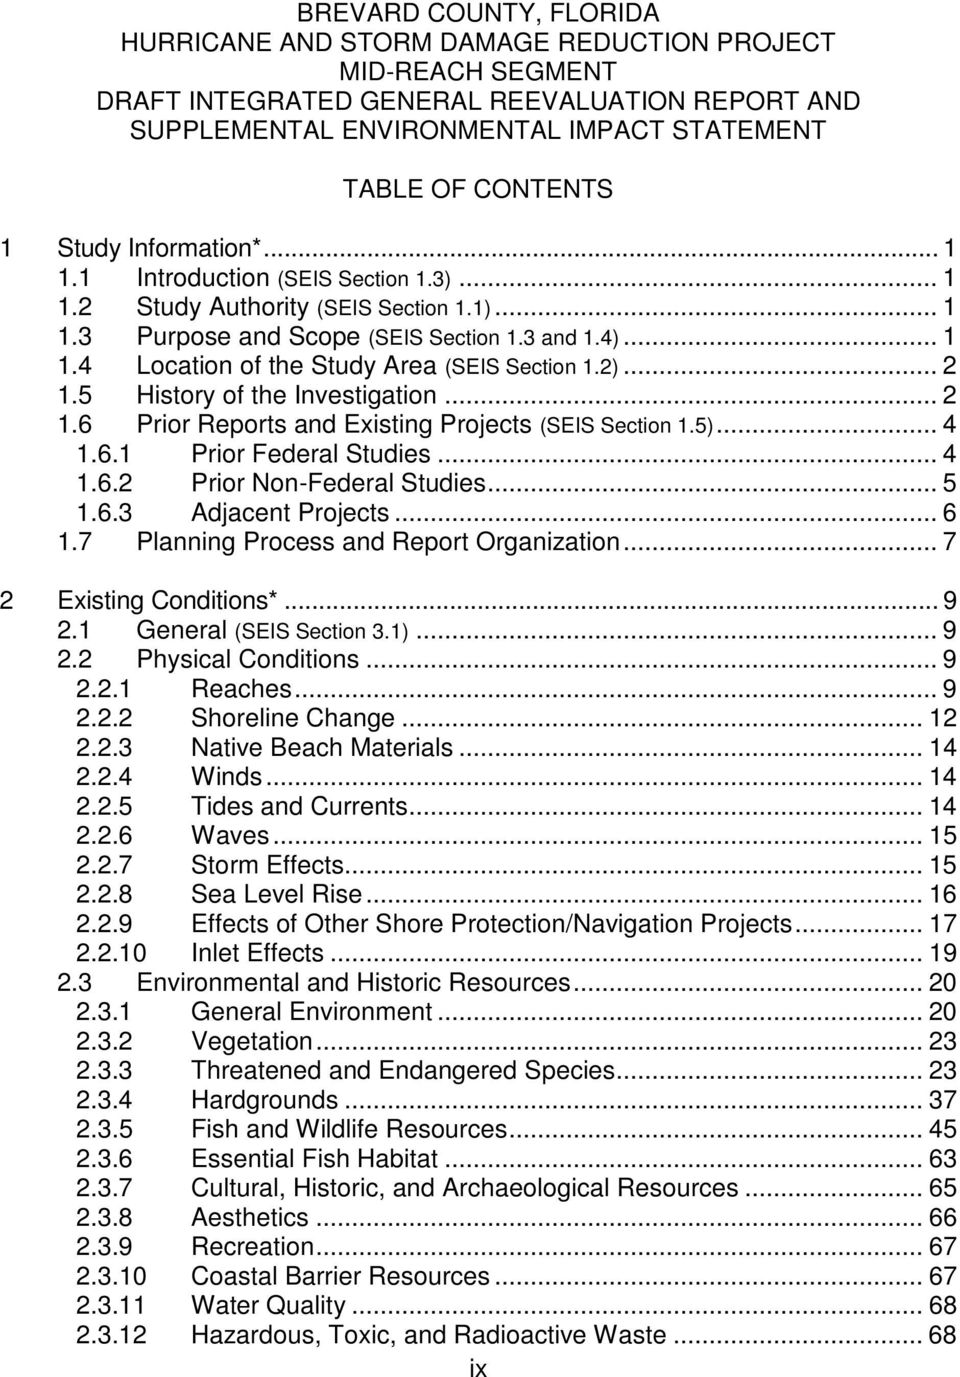 2)... 2 1.5 History of the Investigation... 2 1.6 Prior Reports and Existing Projects (SEIS Section 1.5)... 4 1.6.1 Prior Federal Studies... 4 1.6.2 Prior Non-Federal Studies... 5 1.6.3 Adjacent Projects.